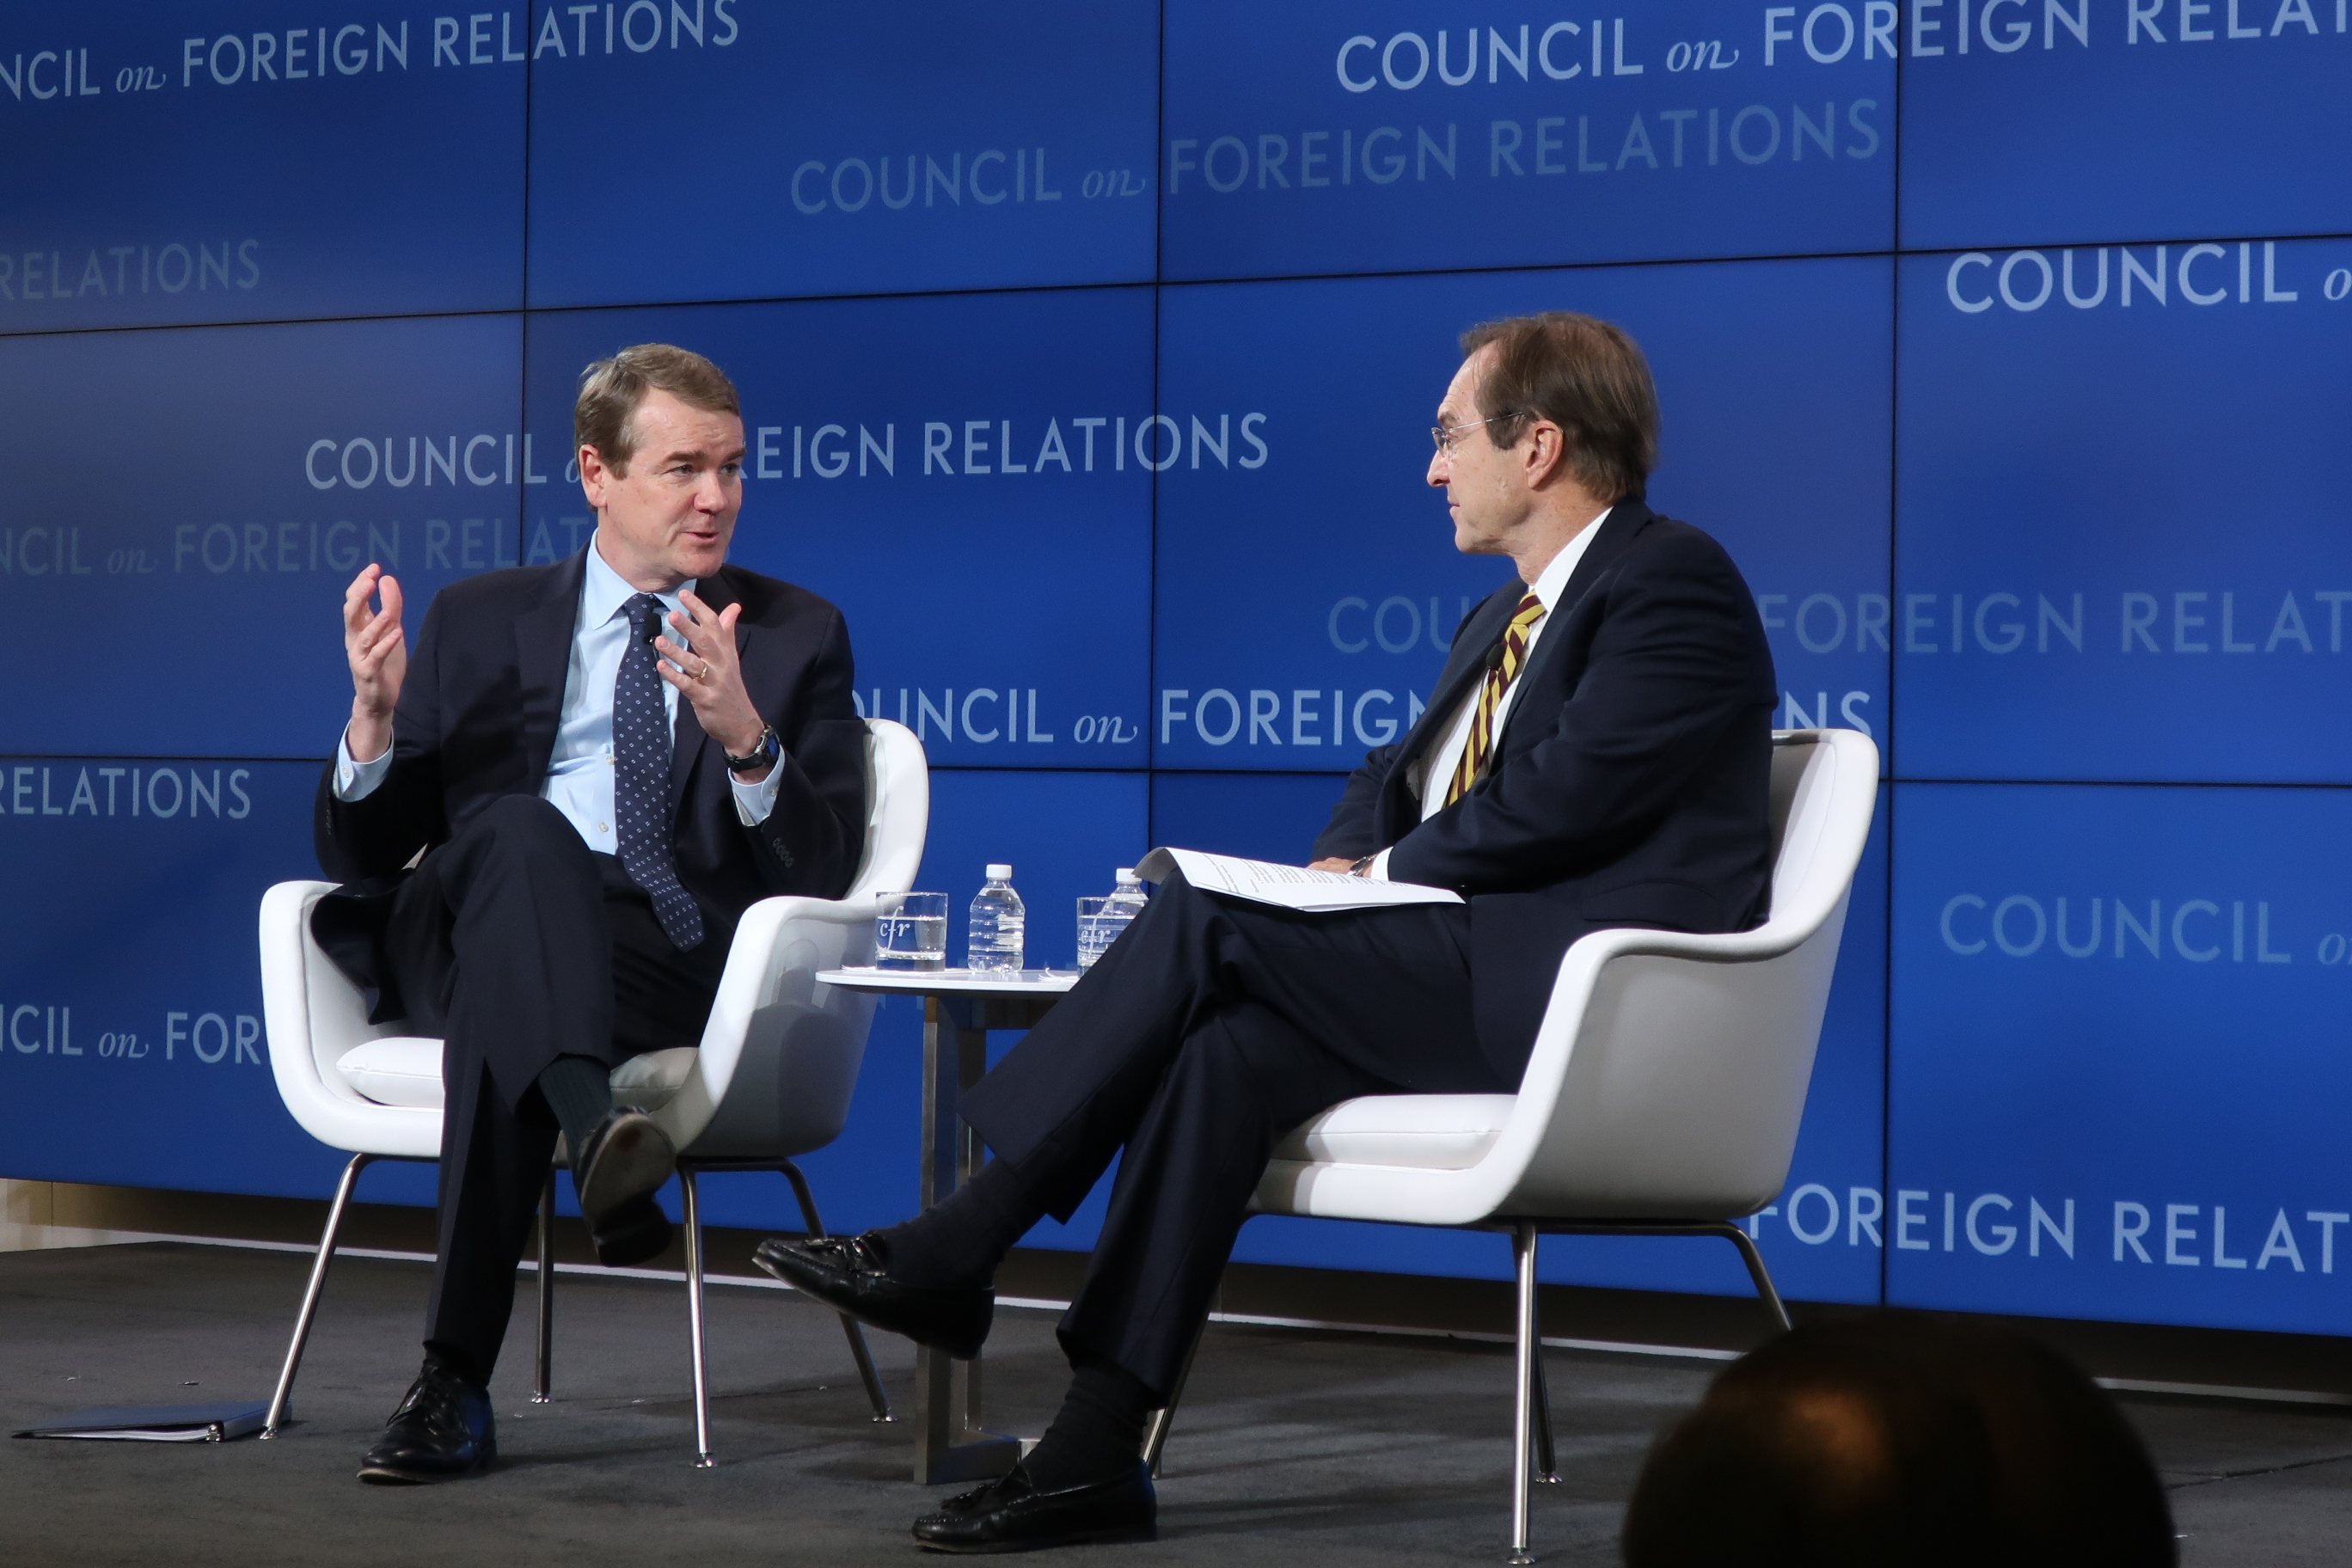 Sen. Michael Bennet shares his foreign policy beliefs at a Council on Foreign Relations event in Washington, D.C., on Nov. 20, 2019.